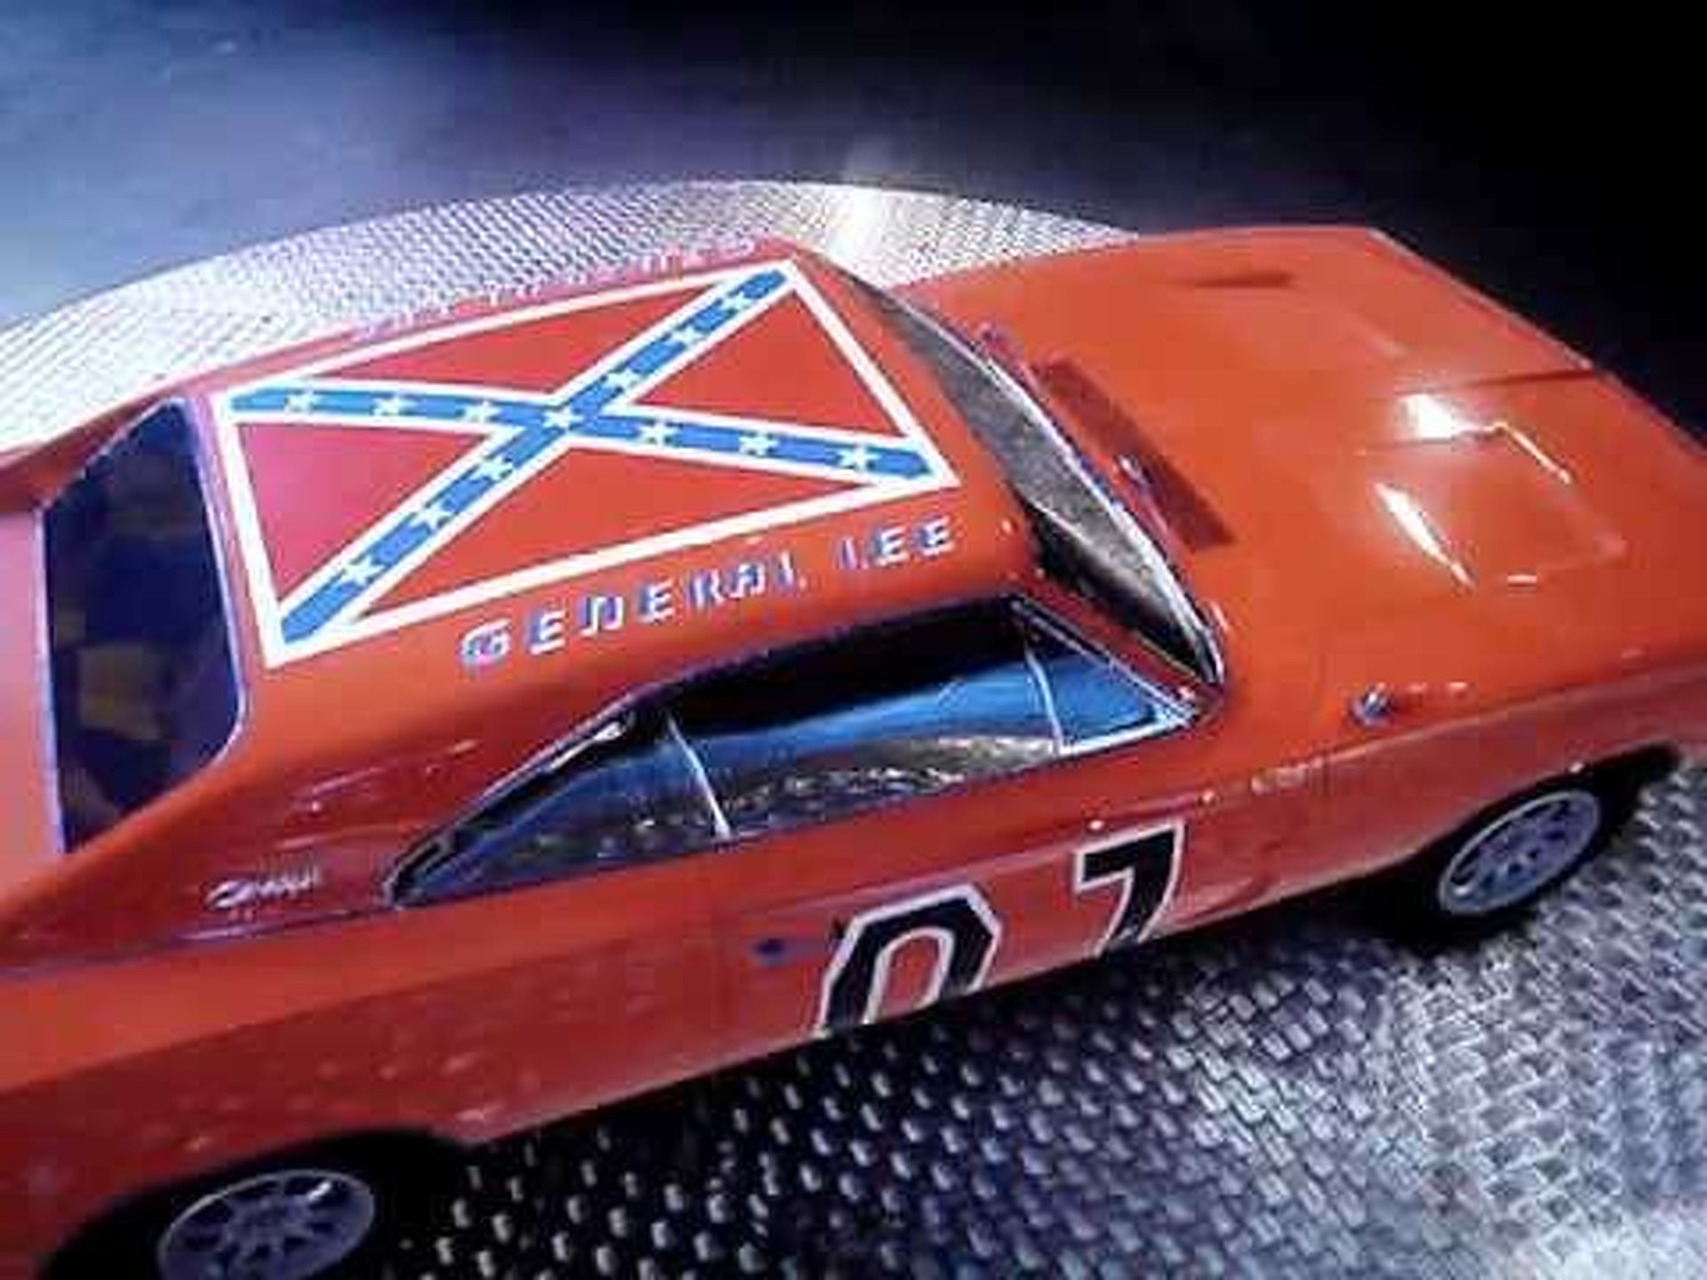 Forza 4 General Lee Vinyl Designs Dodge Charger R/T